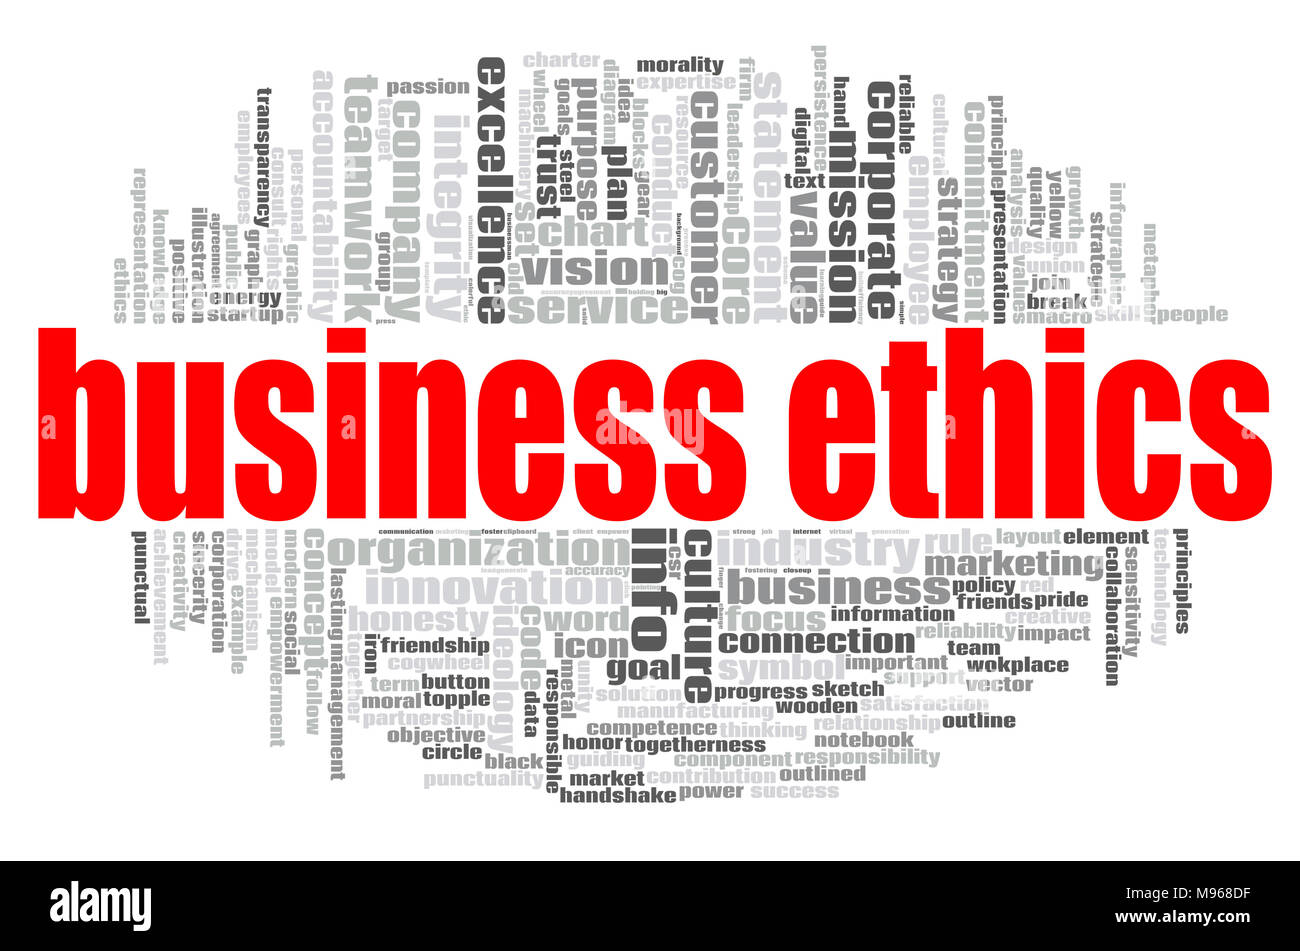 Business Ethics word cloud concept on white background, 3d rendering. - Stock Image